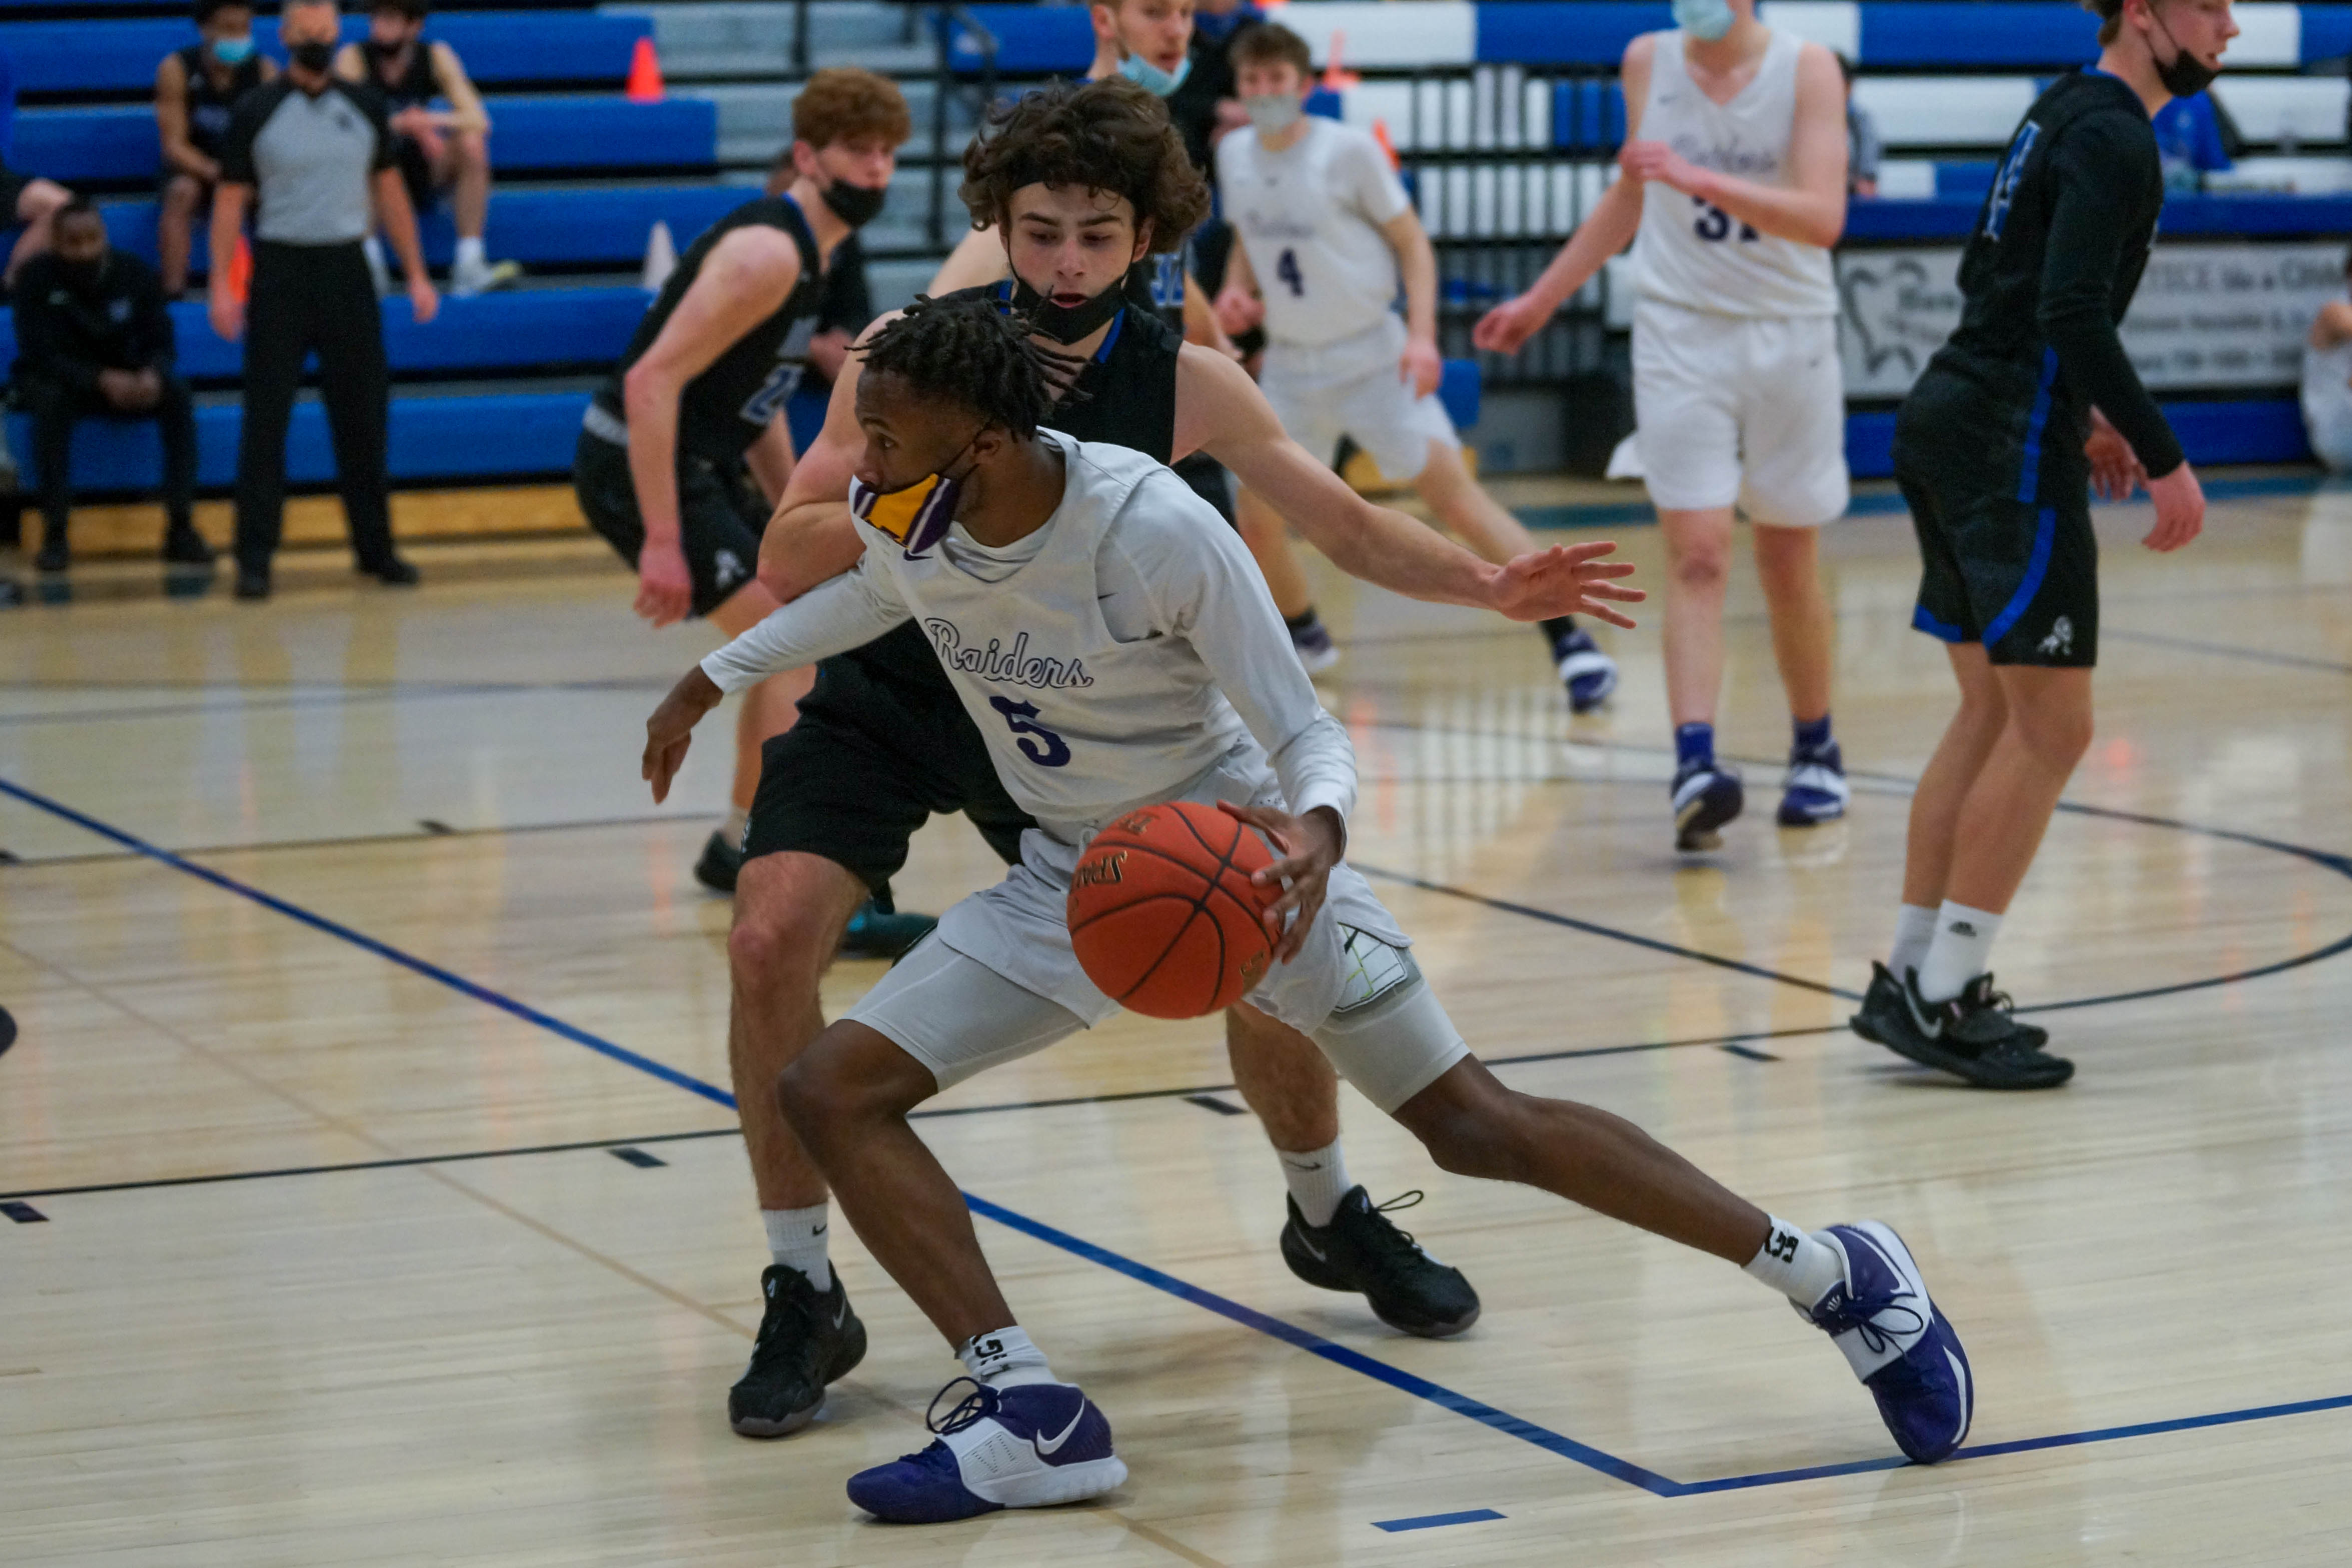 Cretin-Derham Hall's Tre Holloman (5) fends off Woodbury's Devin Padelford during play Friday night in the Class 4A, Section 4 championship game. Holloman scored 25 points in the Raiders' win over the Royals. Photo by Korey McDermott, SportsEngine